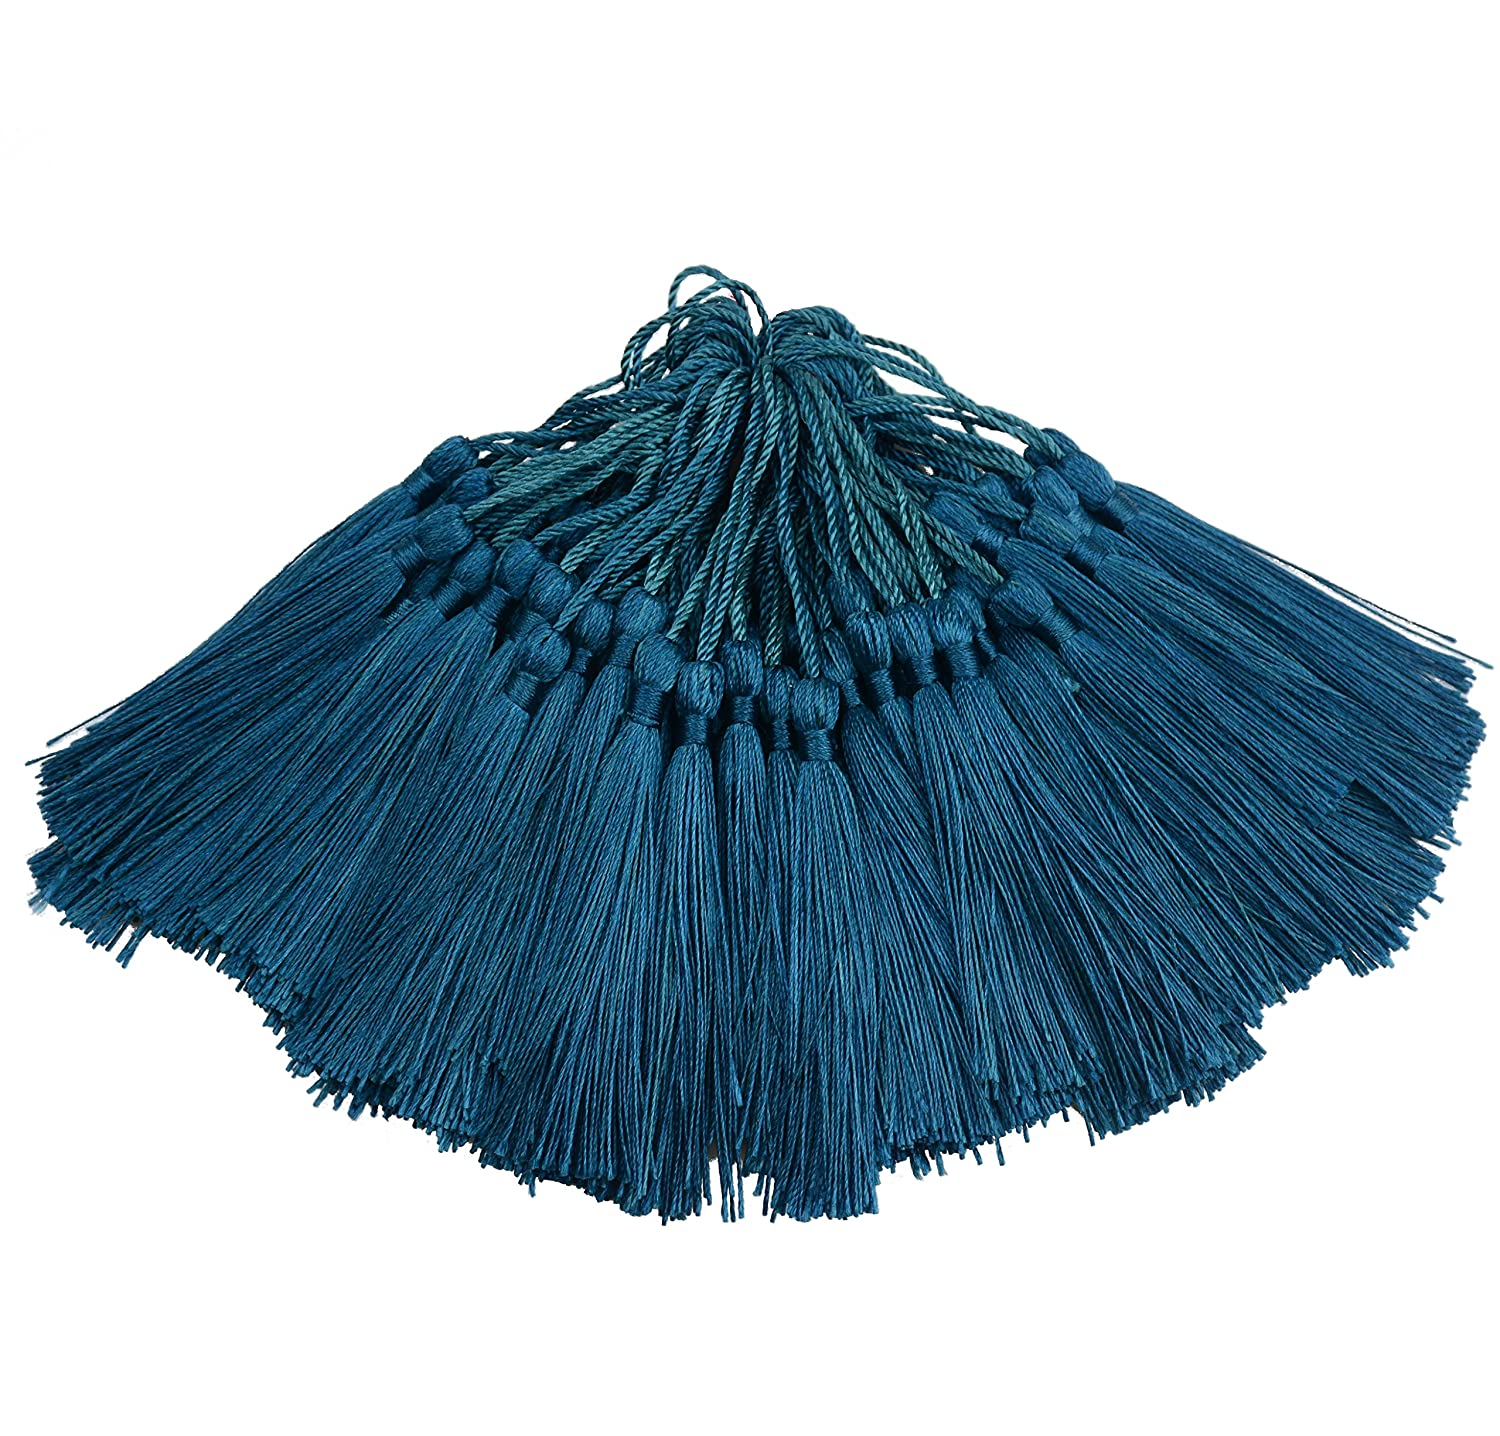 100pcs 13cm/5 Inch Silky Floss Bookmark Tassels with 2-Inch Cord Loop and Small Chinese Knot for Jewelry Making, Souvenir, Bookmarks, DIY Craft Accessory (Champange) Makhry mk-tassel#47 eu